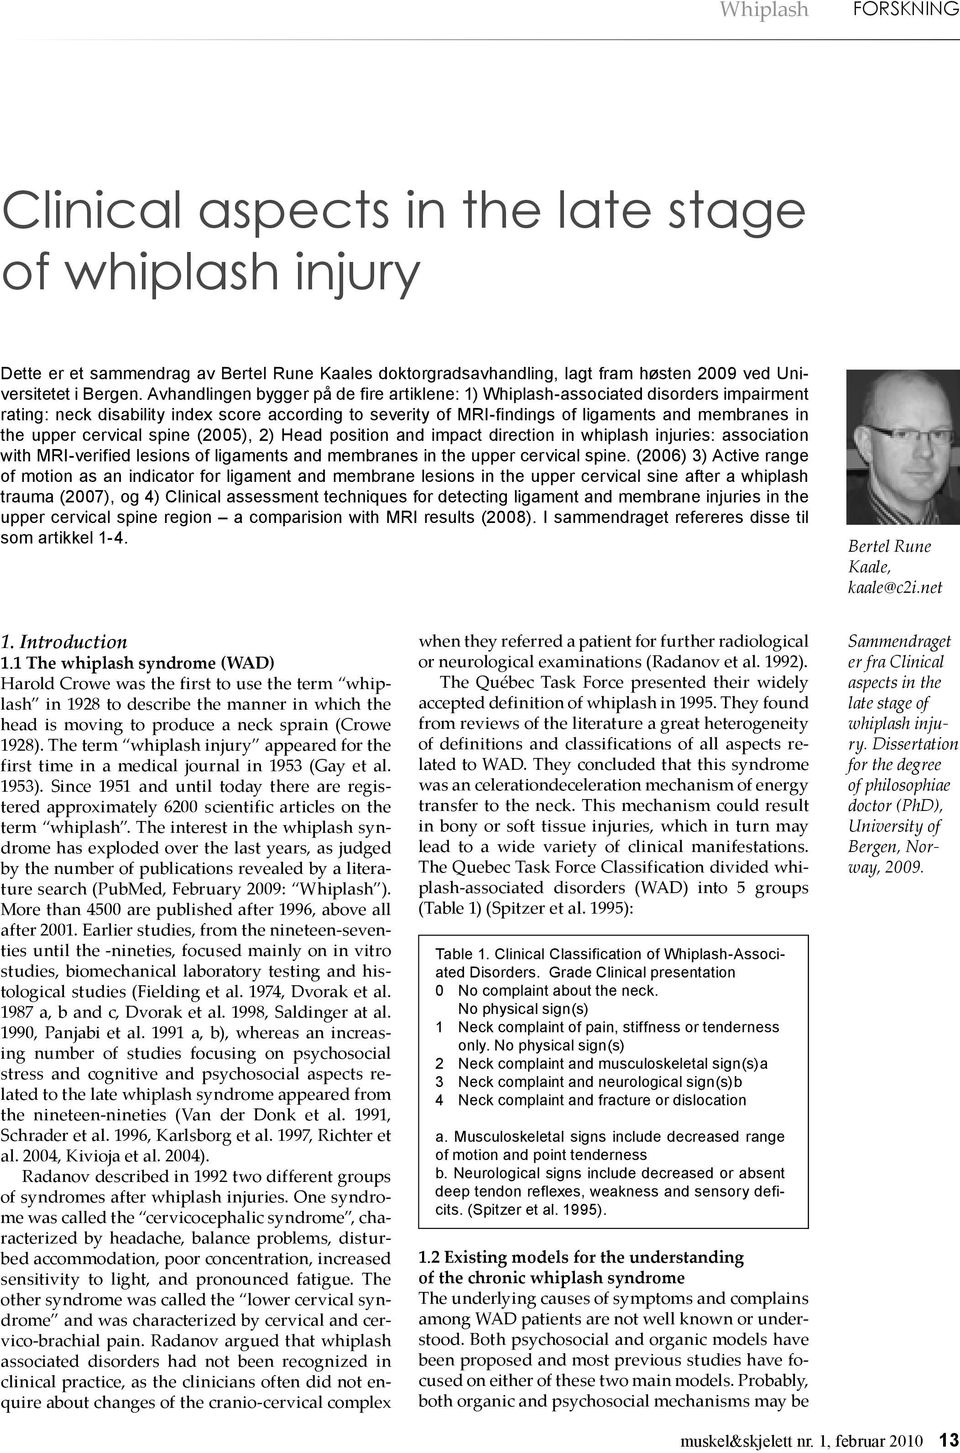 cervical spine (2005), 2) Head position and impact direction in whiplash injuries: association with MRI-verified lesions of ligaments and membranes in the upper cervical spine.